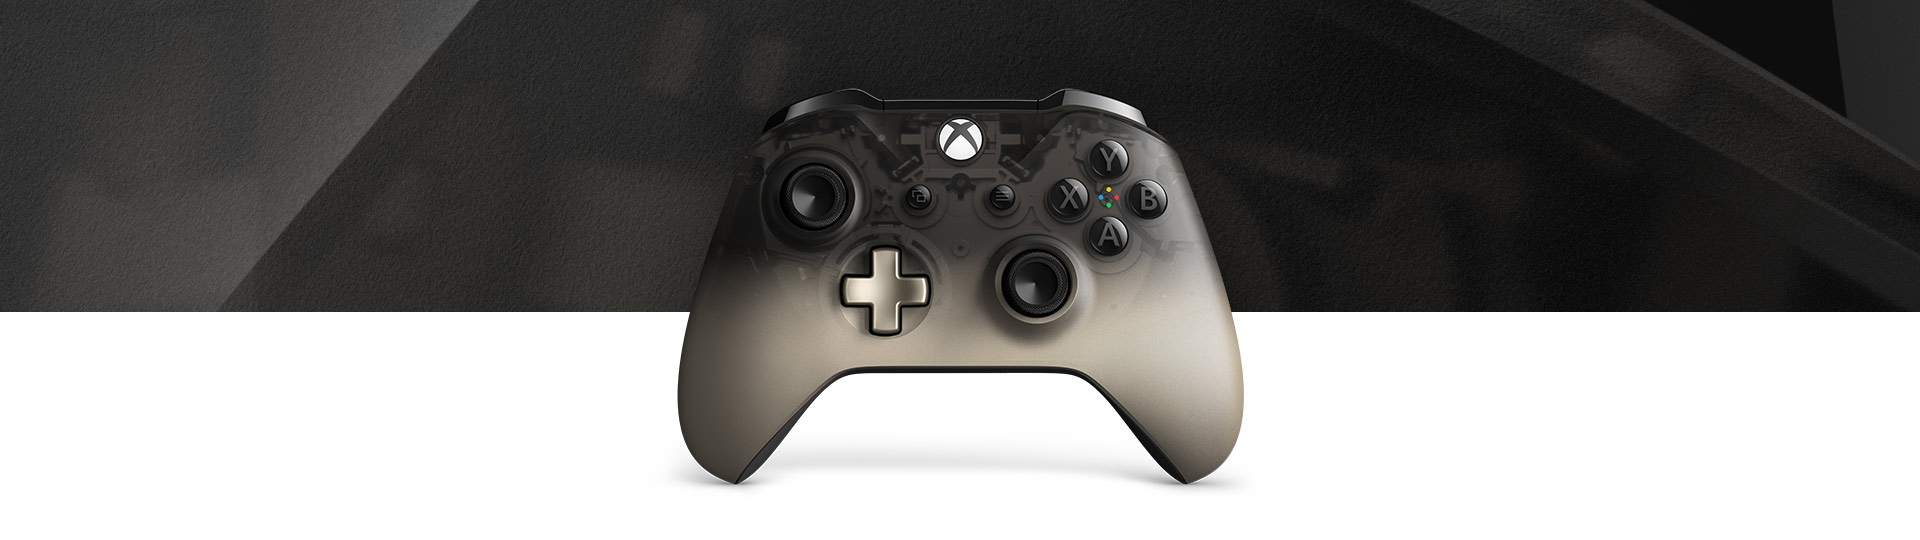 Vista frontal do Controle Sem Fio Xbox – Phantom Black Special Edition